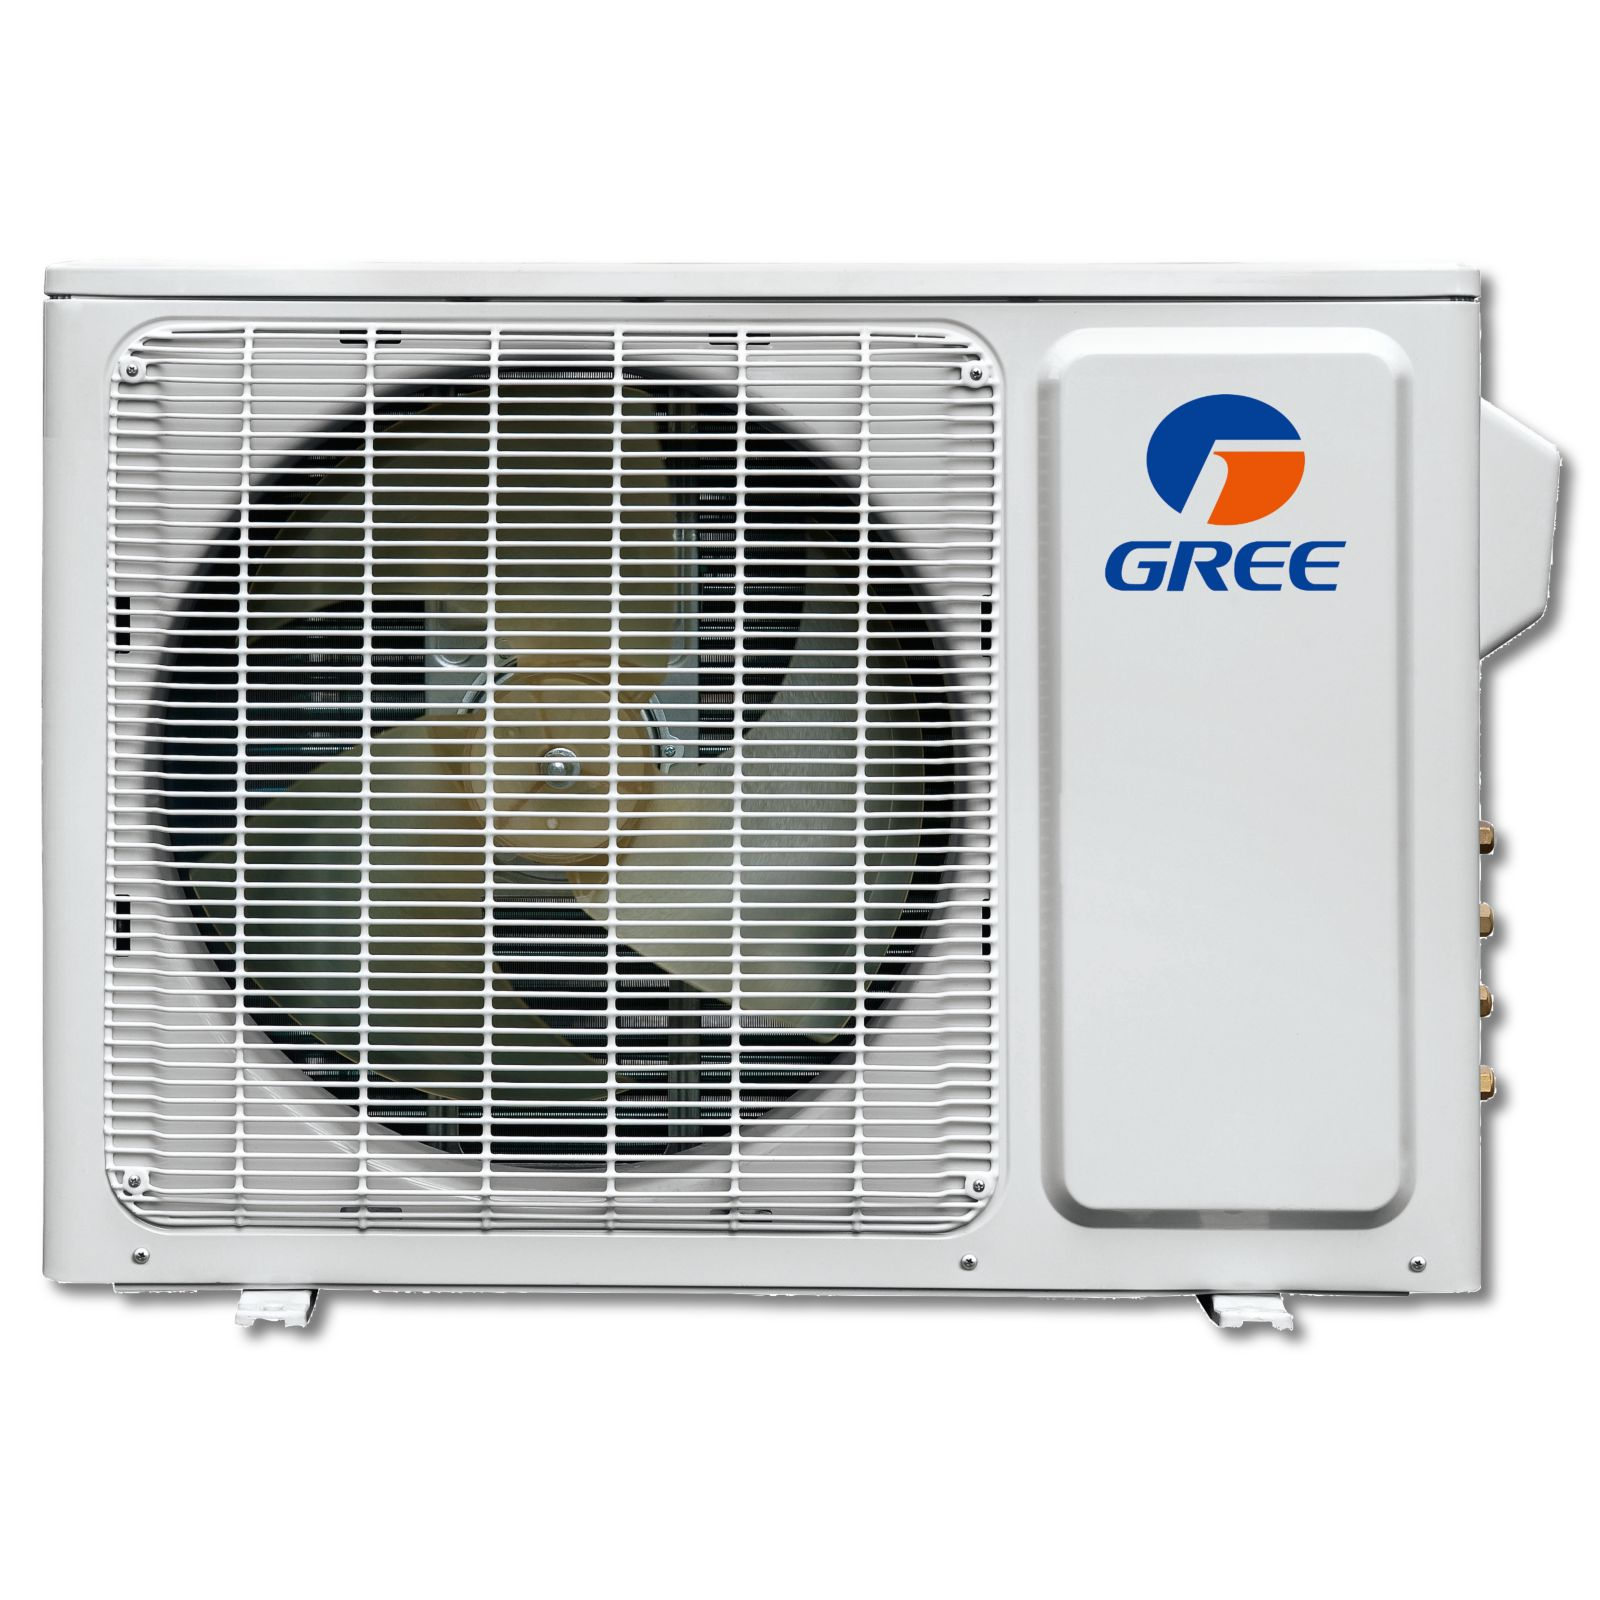 GREE MULTI18HP230V1AO - 1 1/2 Ton 16 SEER EVO+ Multi Ductless Mini-Split Heat Pump 208-230 V